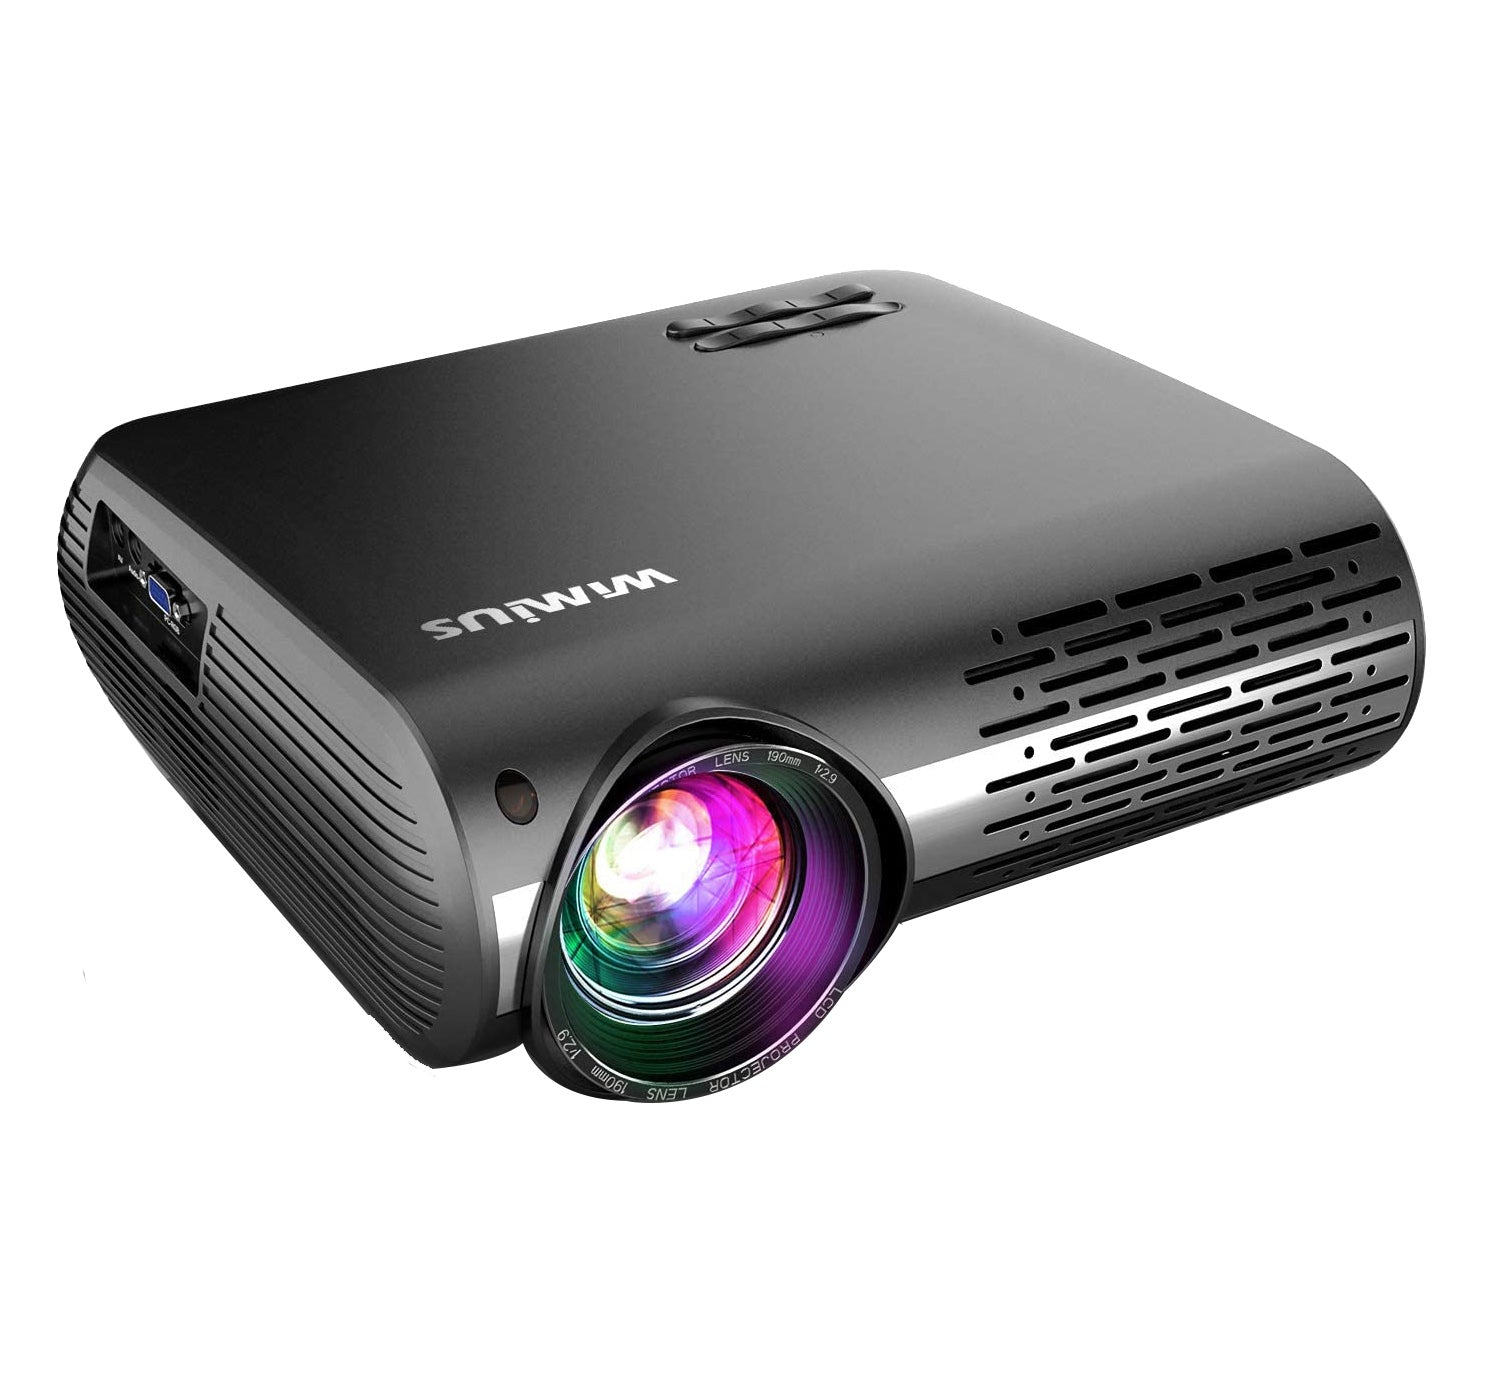 WiMiUS Video Projector - Newest P20